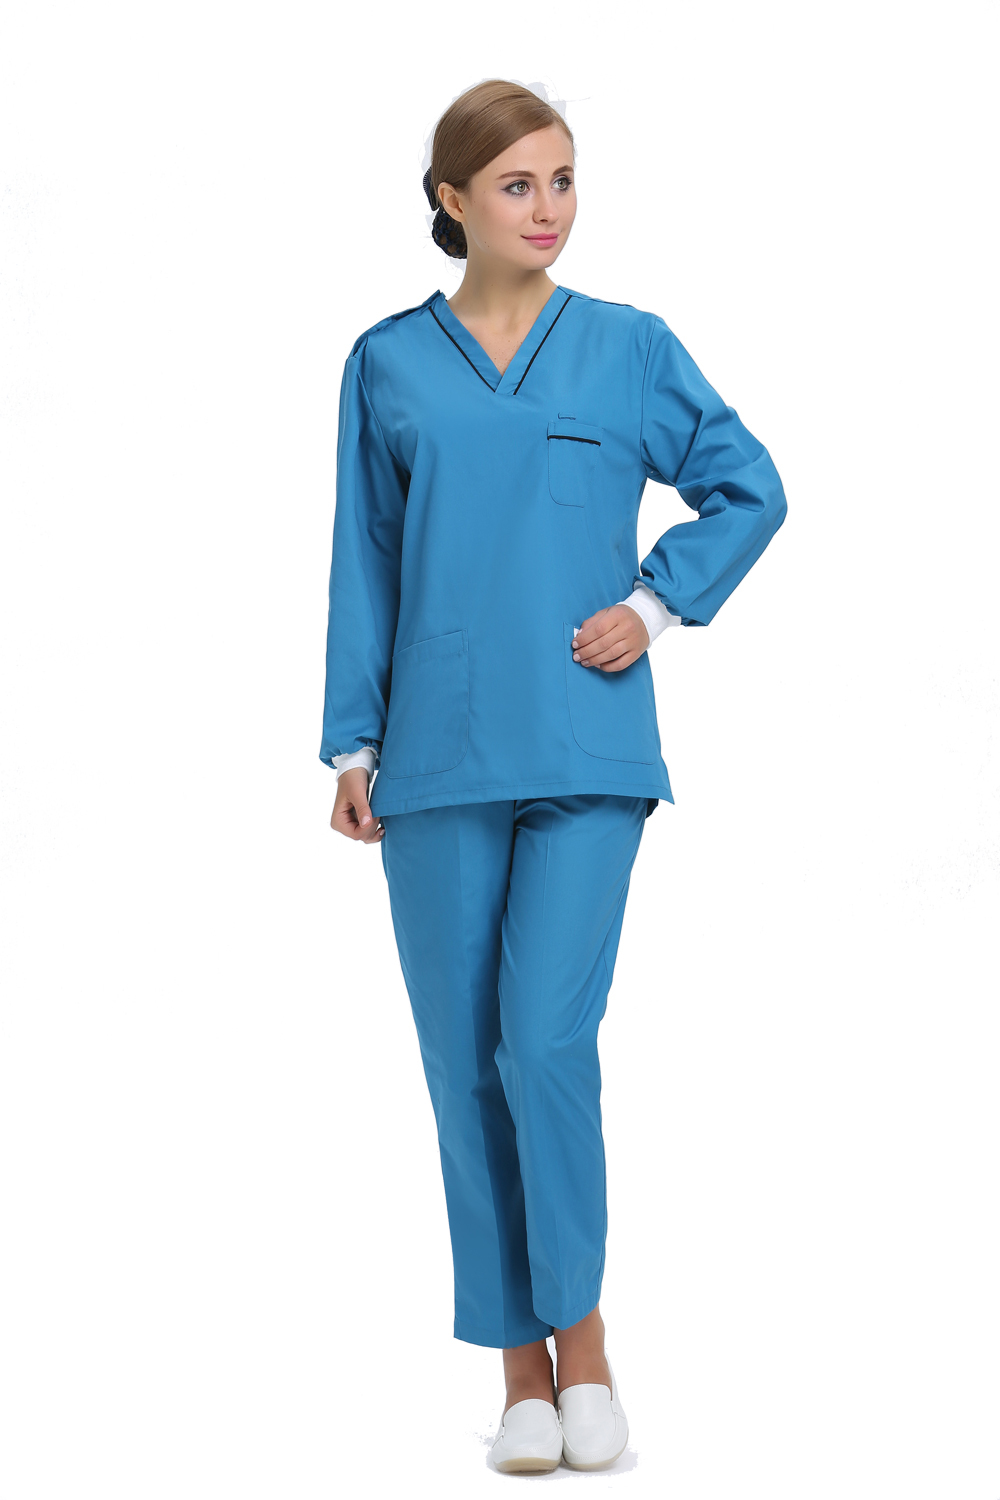 2015 OEM scrub sets hospital medical coat hospital workwear scrub suit hot sale for winter(China (Mainland))